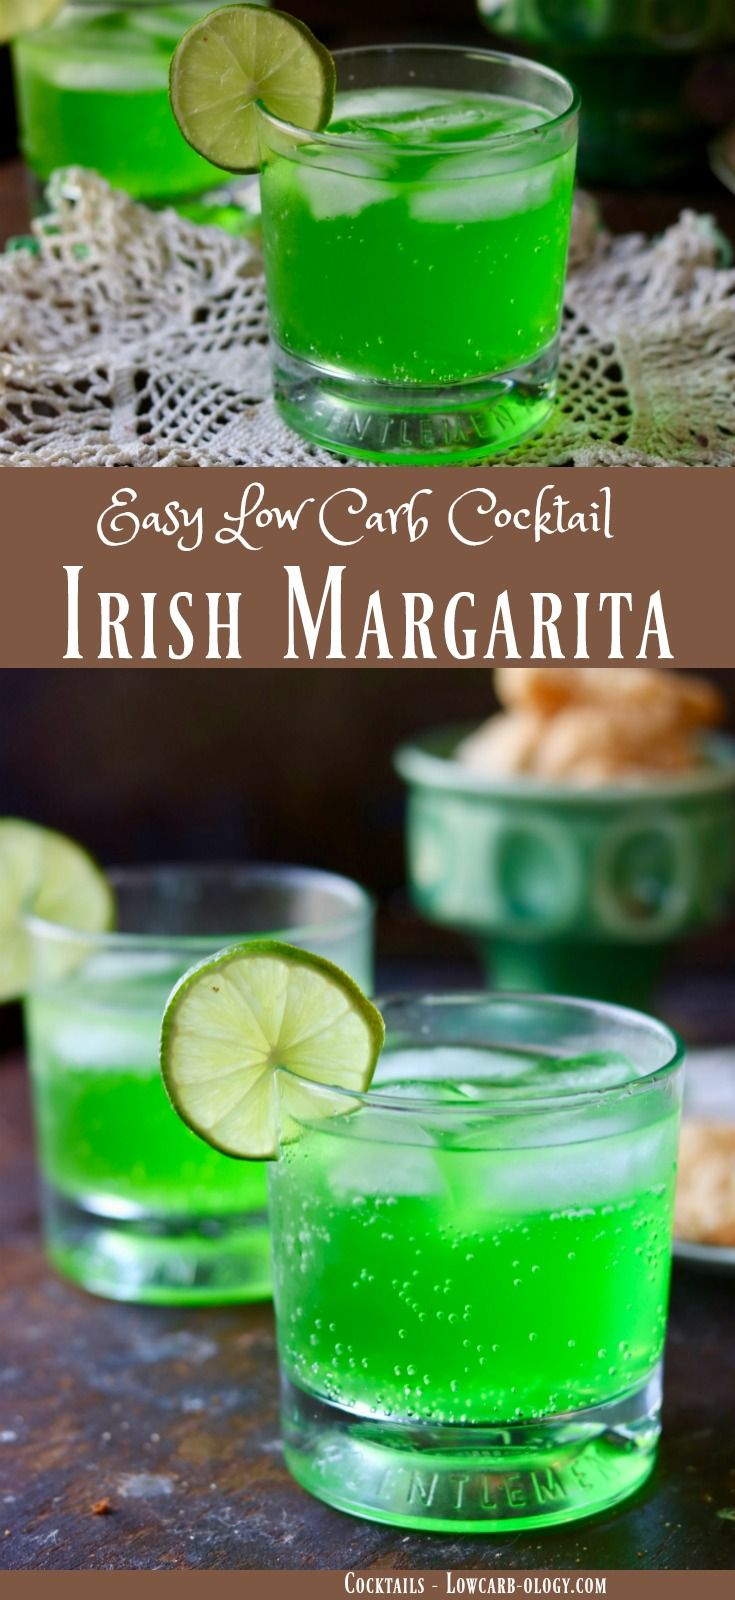 Easy, low carb margarita recipe has 0 carbs. It's the perfect green cocktail for St Patrick's day or anytime you want a refreshing tequila based drink. From Lowcarb-ology.com